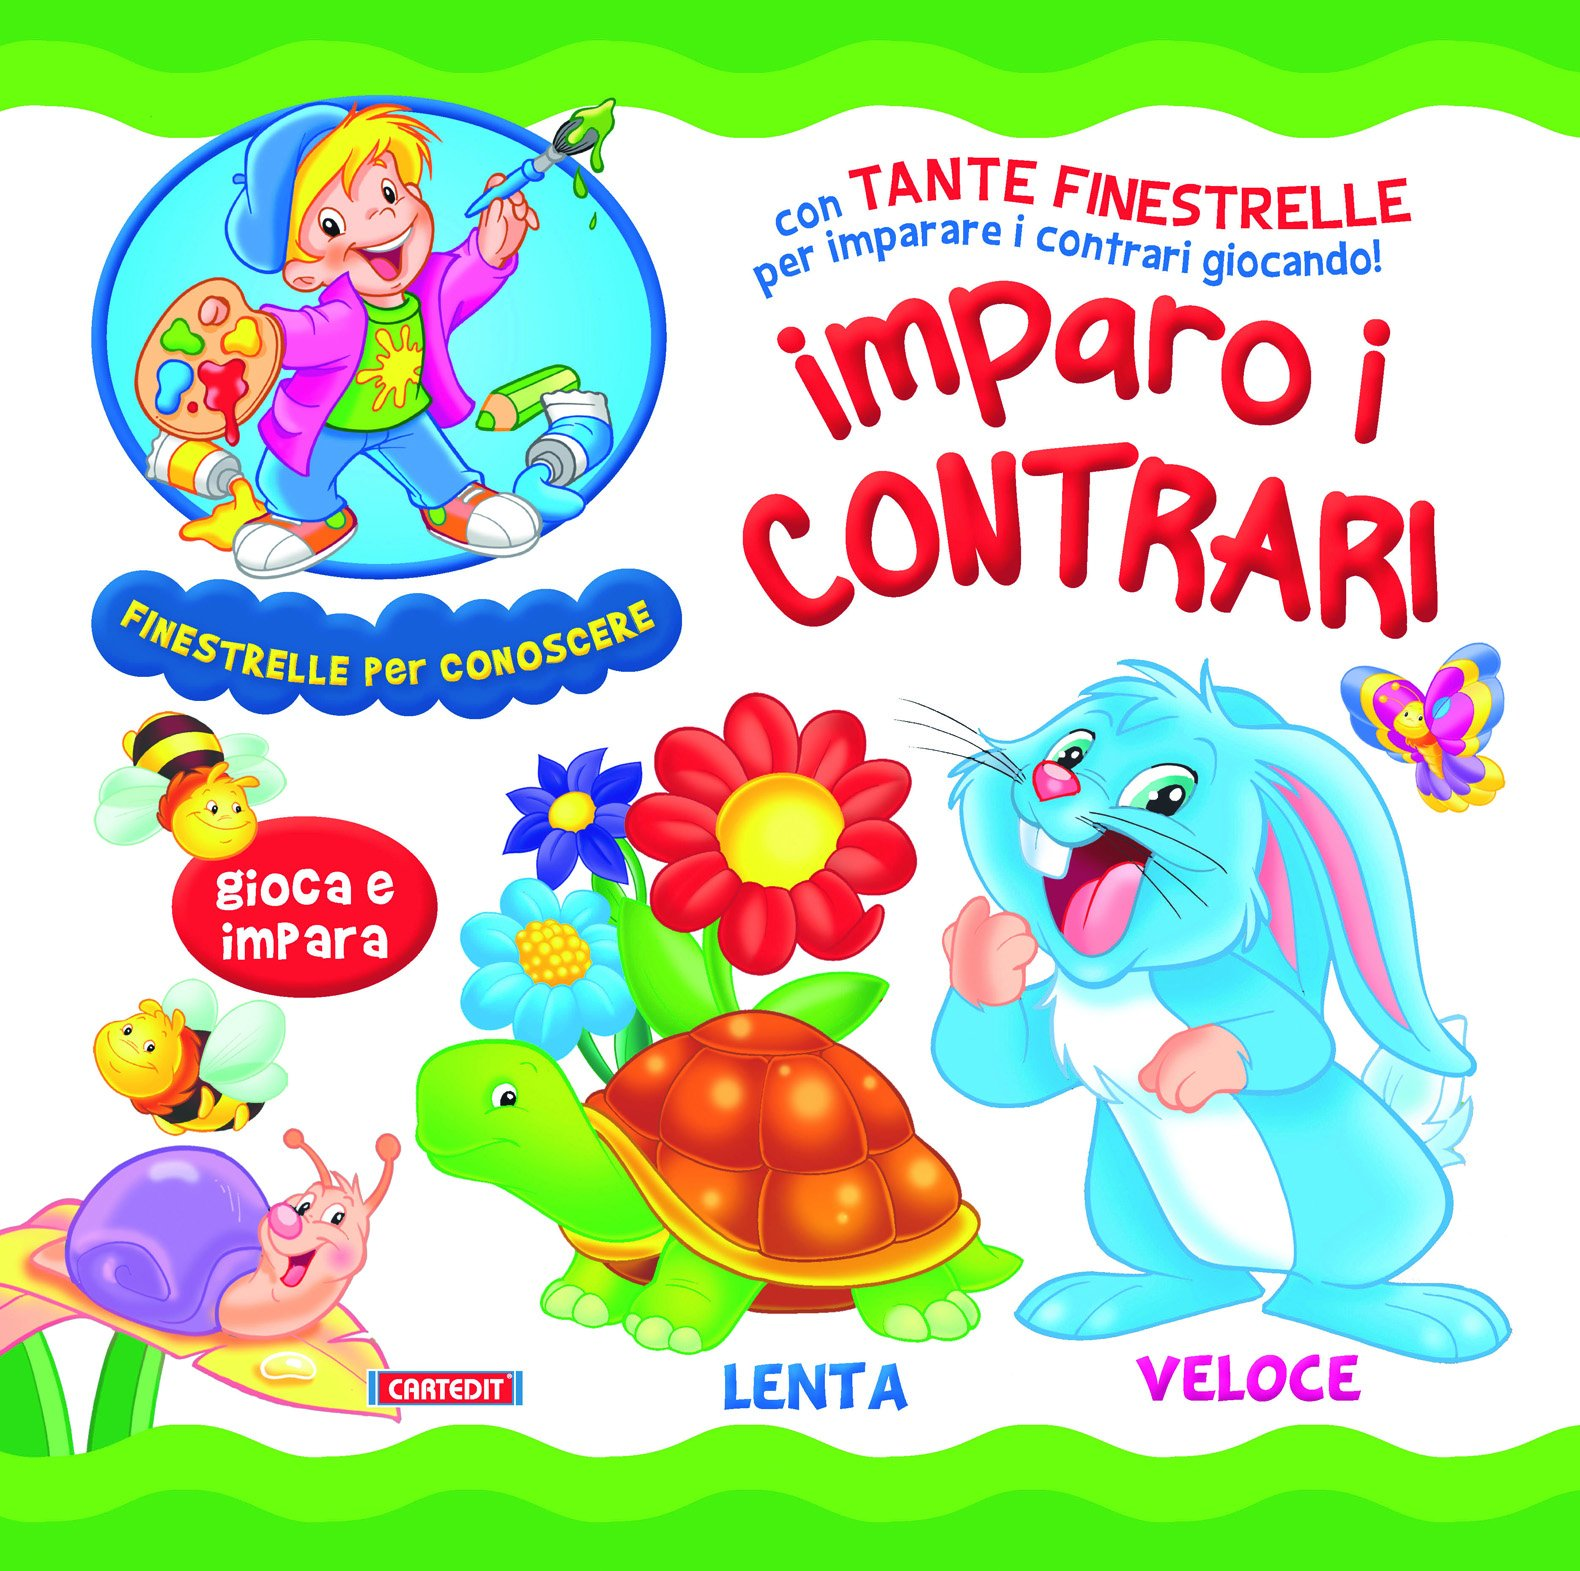 Imparo i contrari. Ediz. illustrata Copertina rigida – 30 set 2013 aa.vv. Cartedit Cart-edit 8863093741